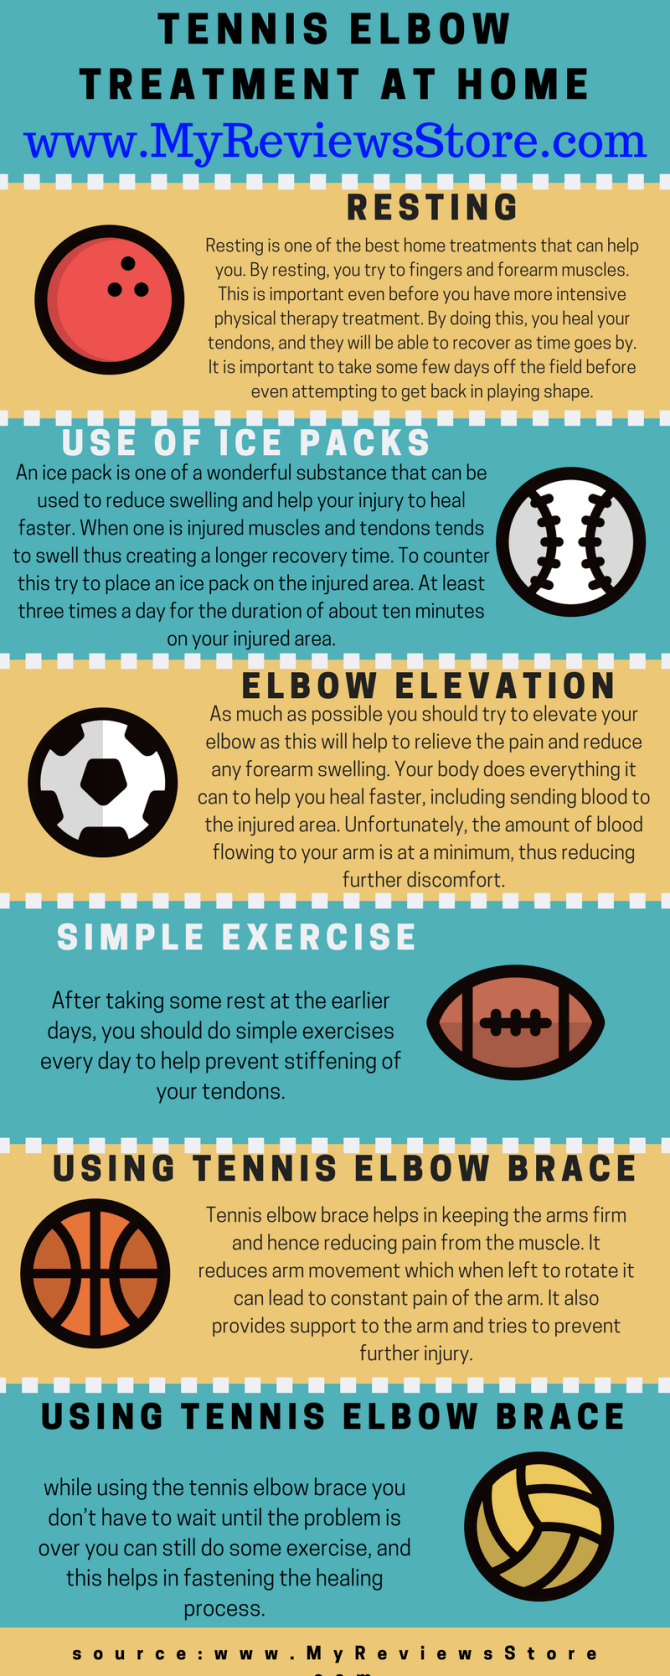 Tennis Elbow Treatment At Home